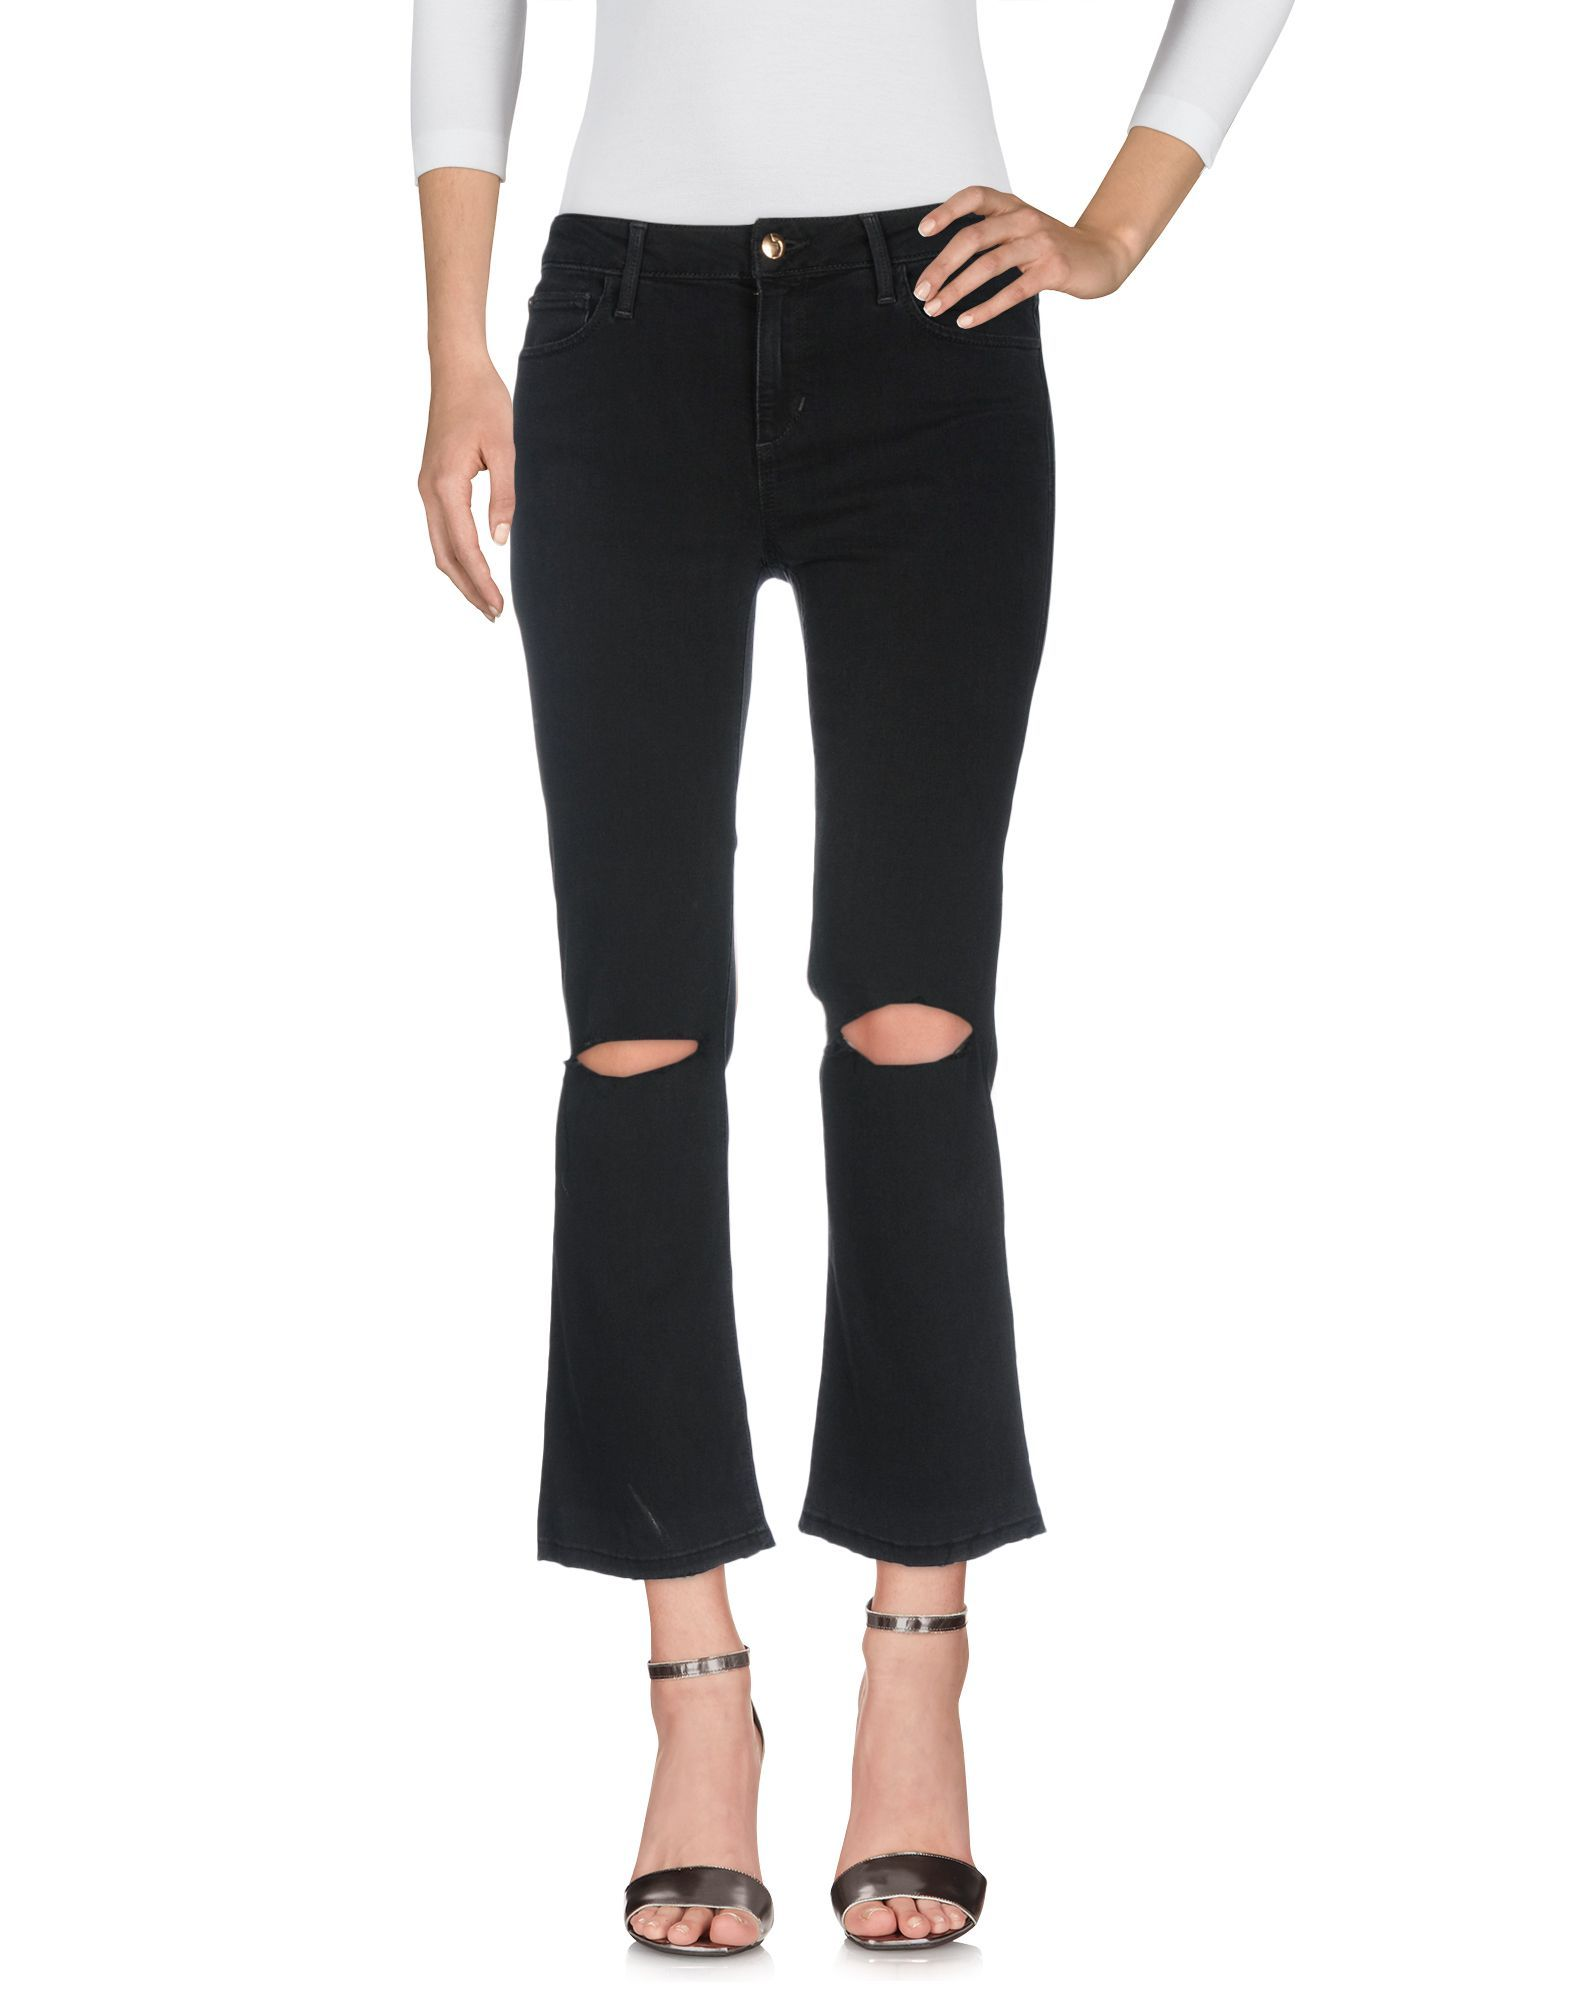 DENIM Joe'S Jeans Black Woman Rayon